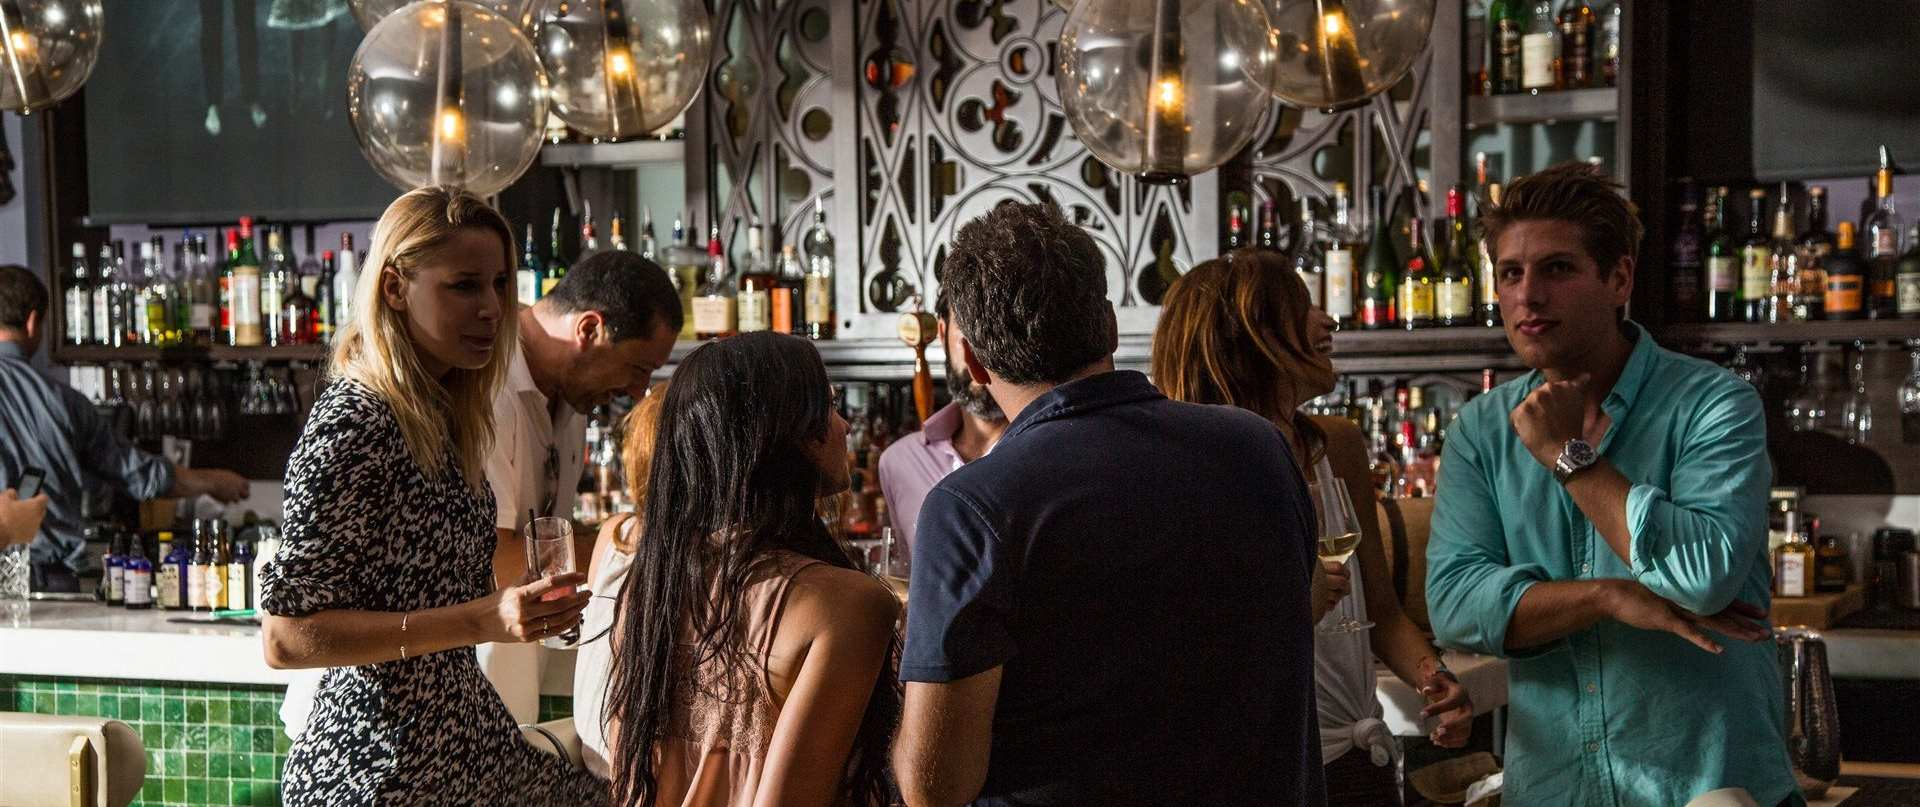 people-at-the-bar.jpg.1920x807_0_105_10000